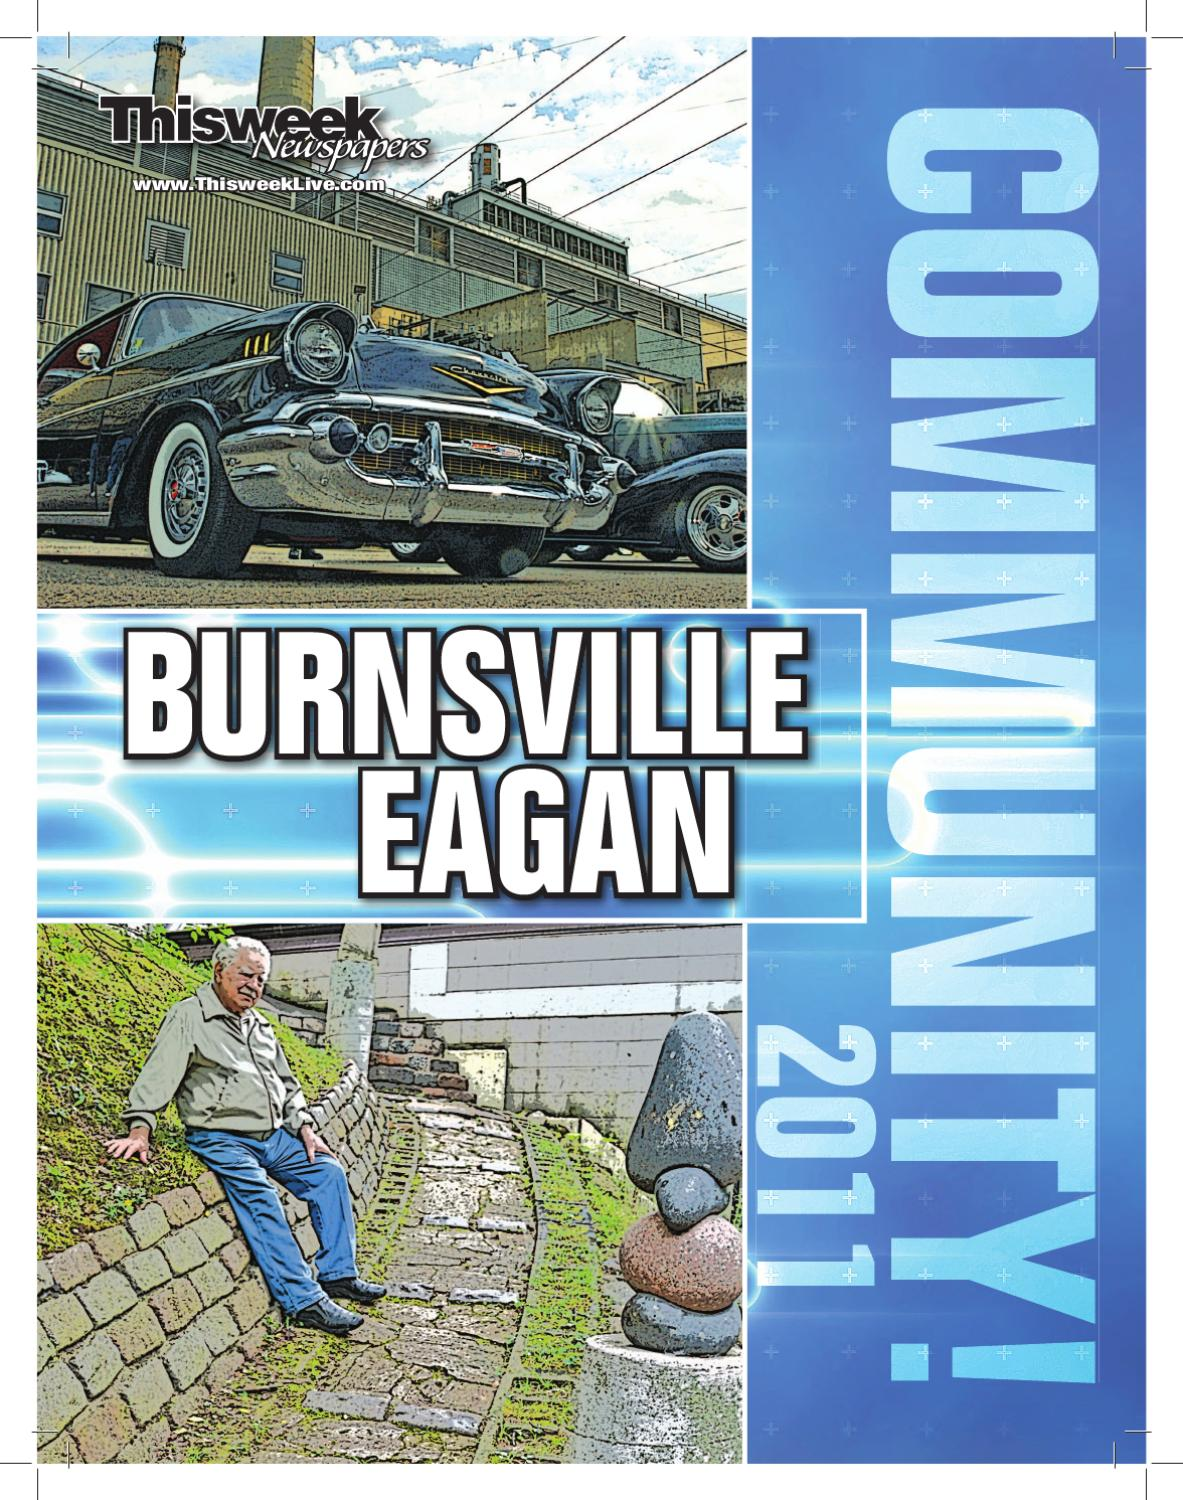 burnsville eagan community guide by thisweek newspapers 2011 burnsville eagan community guide by thisweek newspapers dakota county tribune business weekly issuu